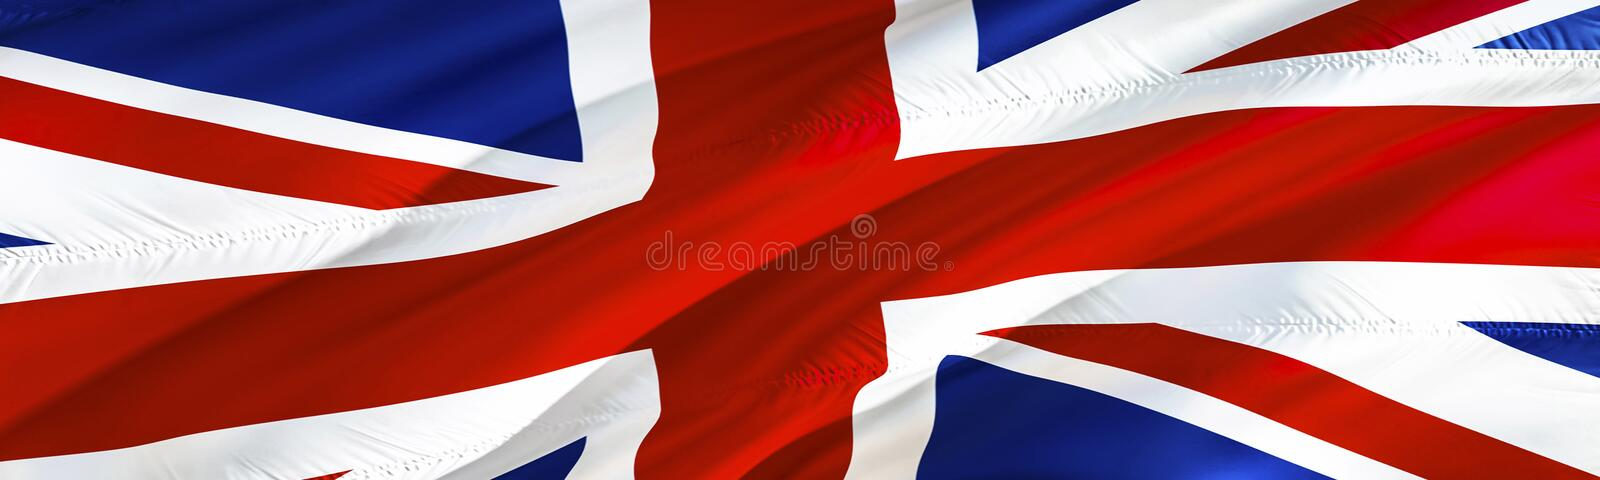 United Kingdom flag. Flag of UK. 3D Waving flag design,3D rendering. The national symbol of UK background wallpaper. 3D ribbon, royalty free illustration